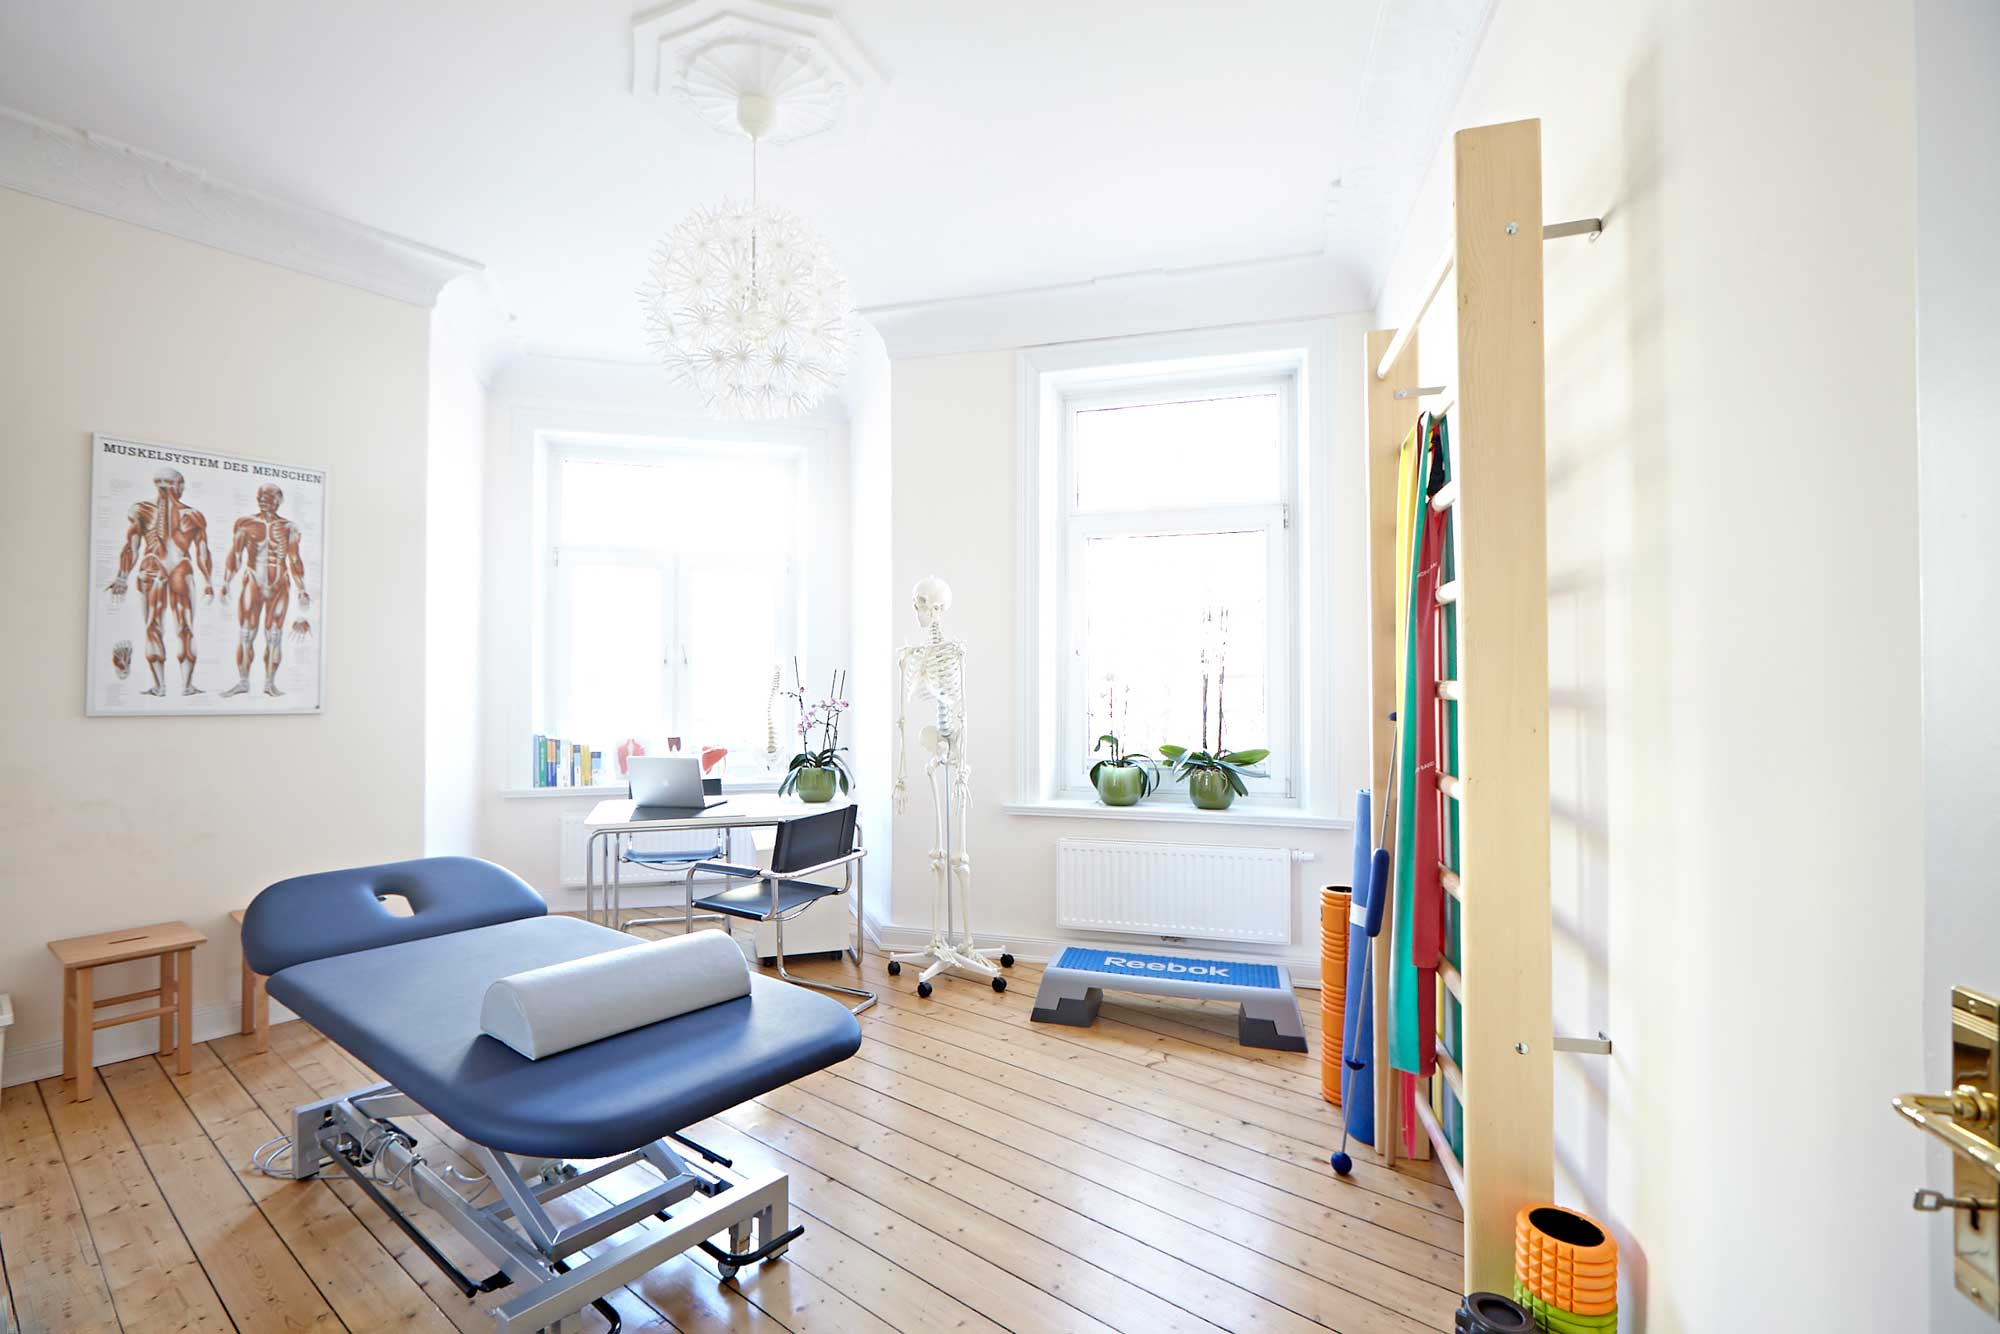 physiotherapie manualtherapie hamburg eppendorf. Black Bedroom Furniture Sets. Home Design Ideas